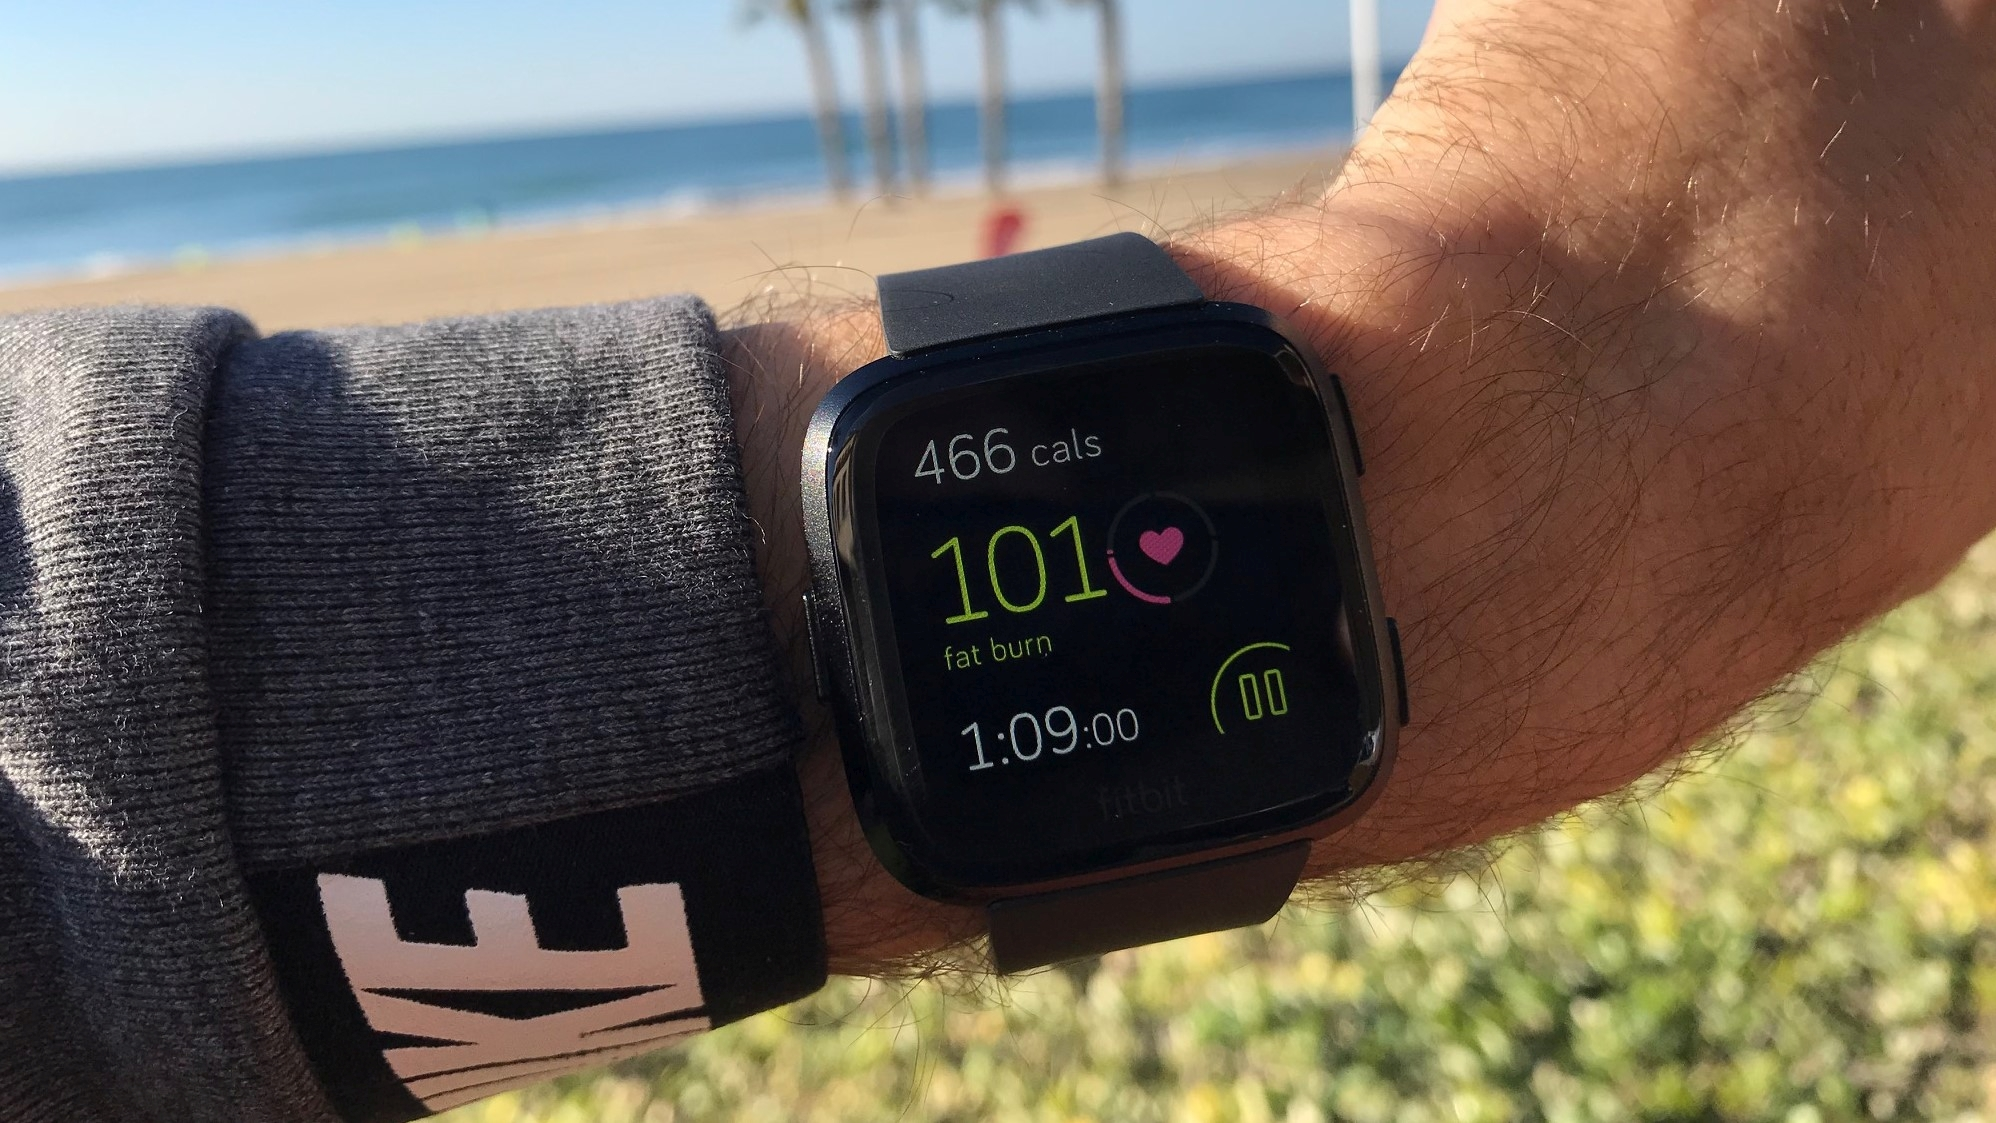 There are many dedicated workout options on the Versa's Exercise app